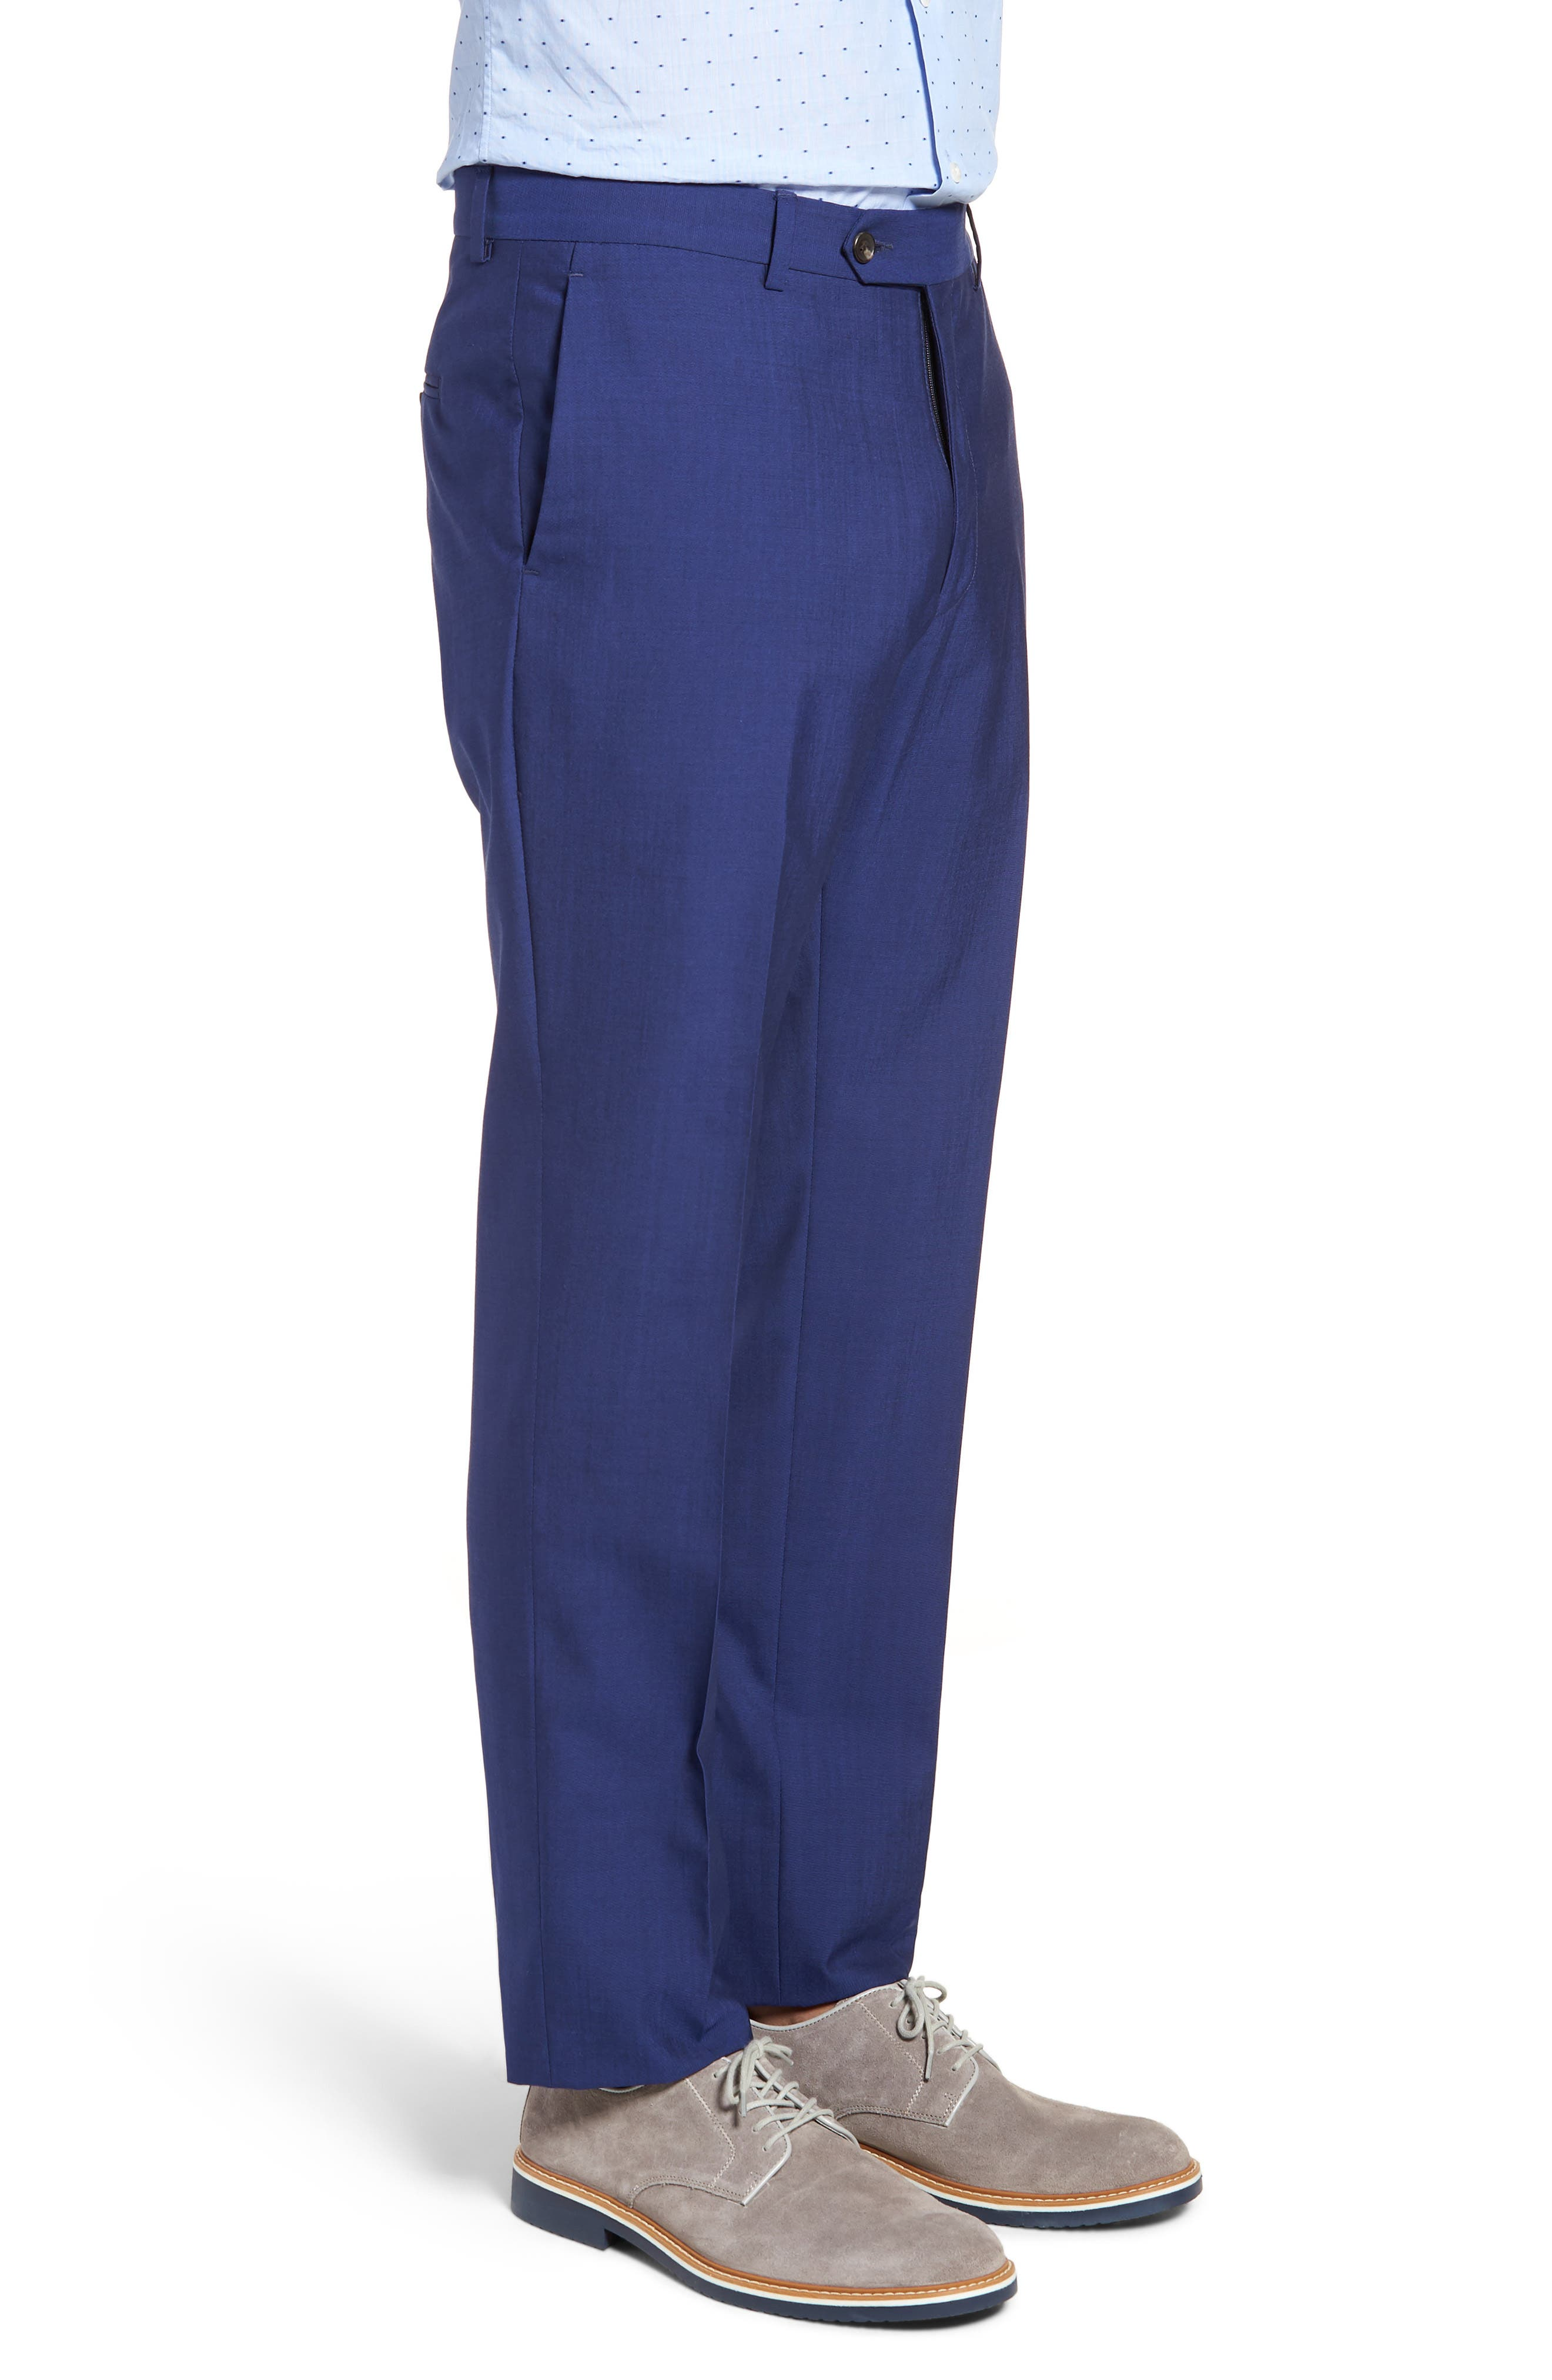 Dagger Flat Front Solid Wool Trousers,                             Alternate thumbnail 3, color,                             High Blue